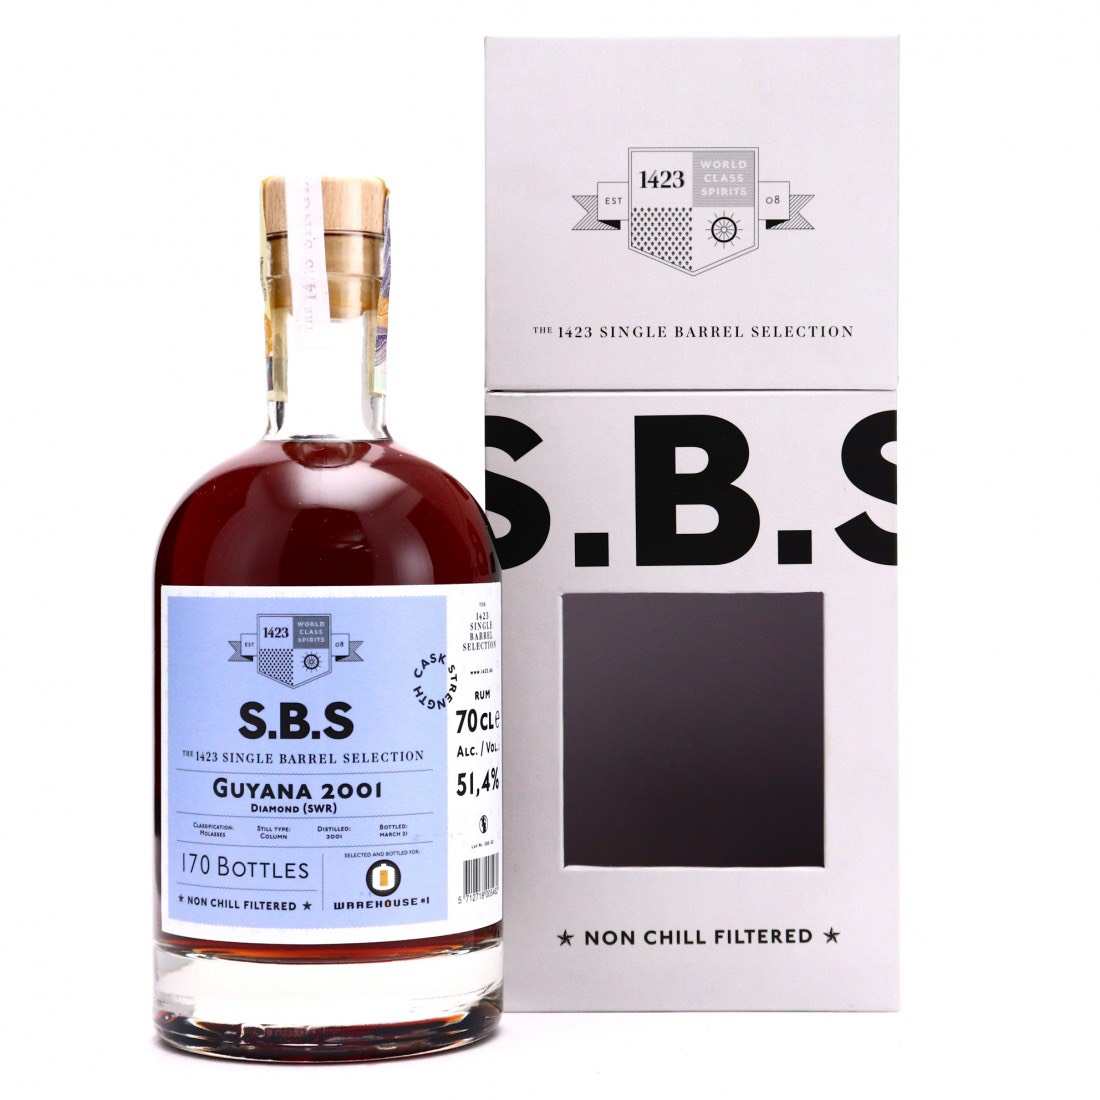 Bottle image of S.B.S Selected and bottled for Warehouse #1 SWR